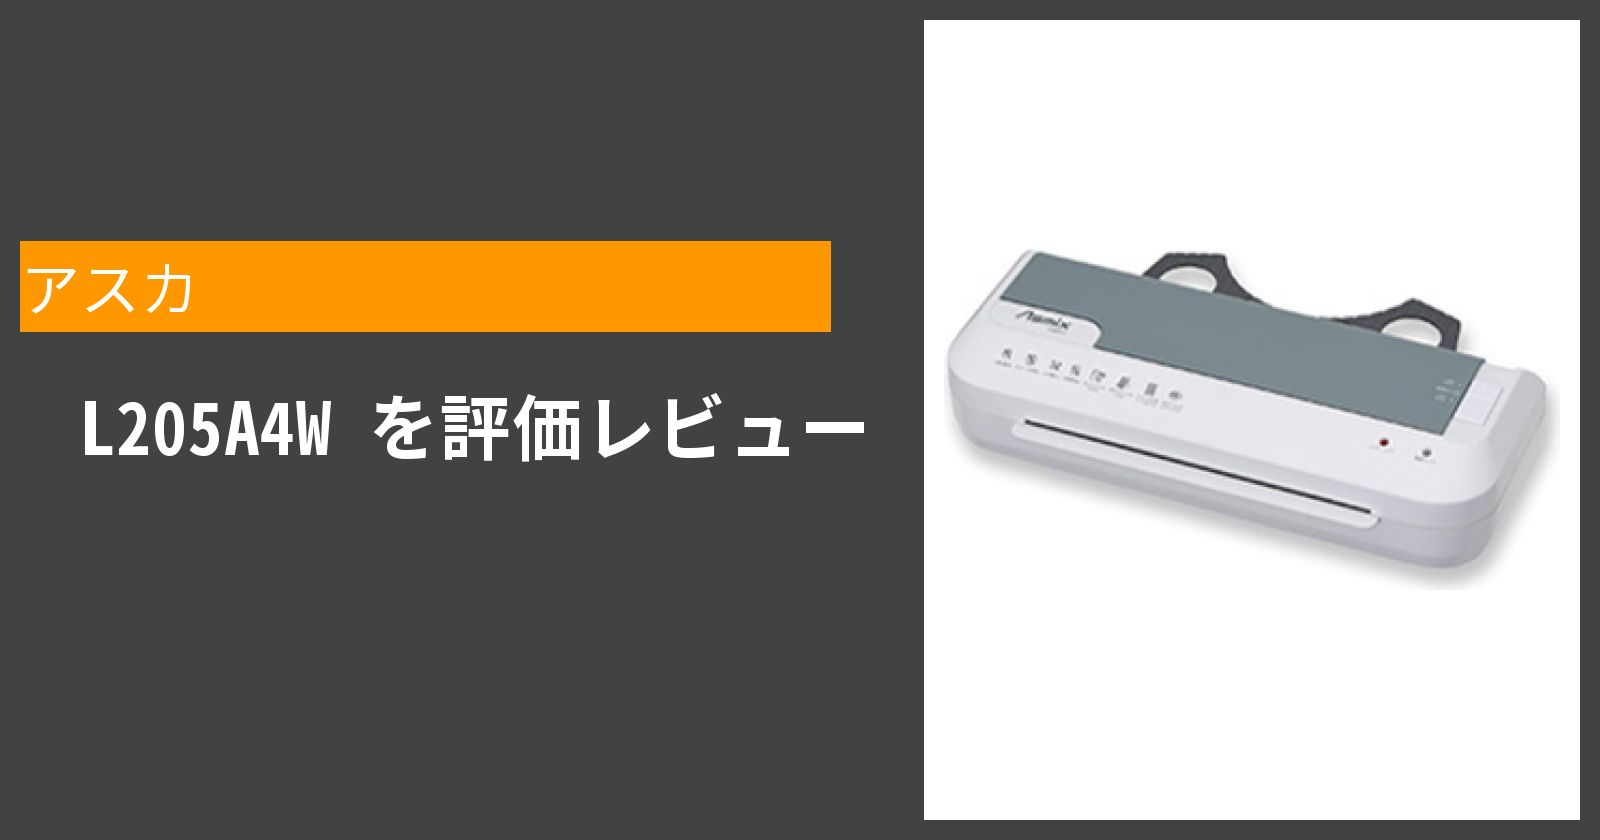 L205A4Wを徹底評価